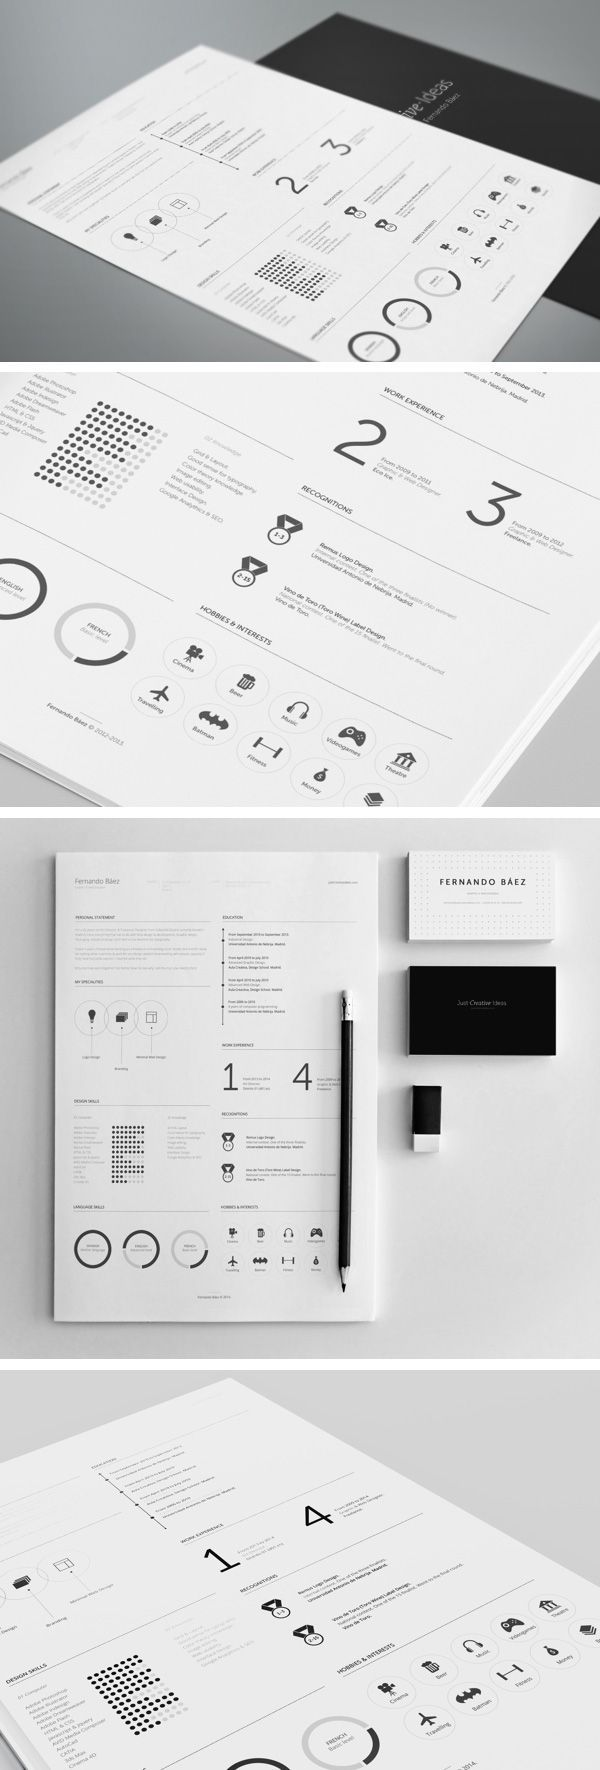 A free vector resume template that is very fit for designer and developers and has a business card template with it. Download Here - posted under Freebies tagged with: AI, Business Card, CV, Free, Graphic Design, Print, Resource, Resume, Template, Vector by Fribly Editorial